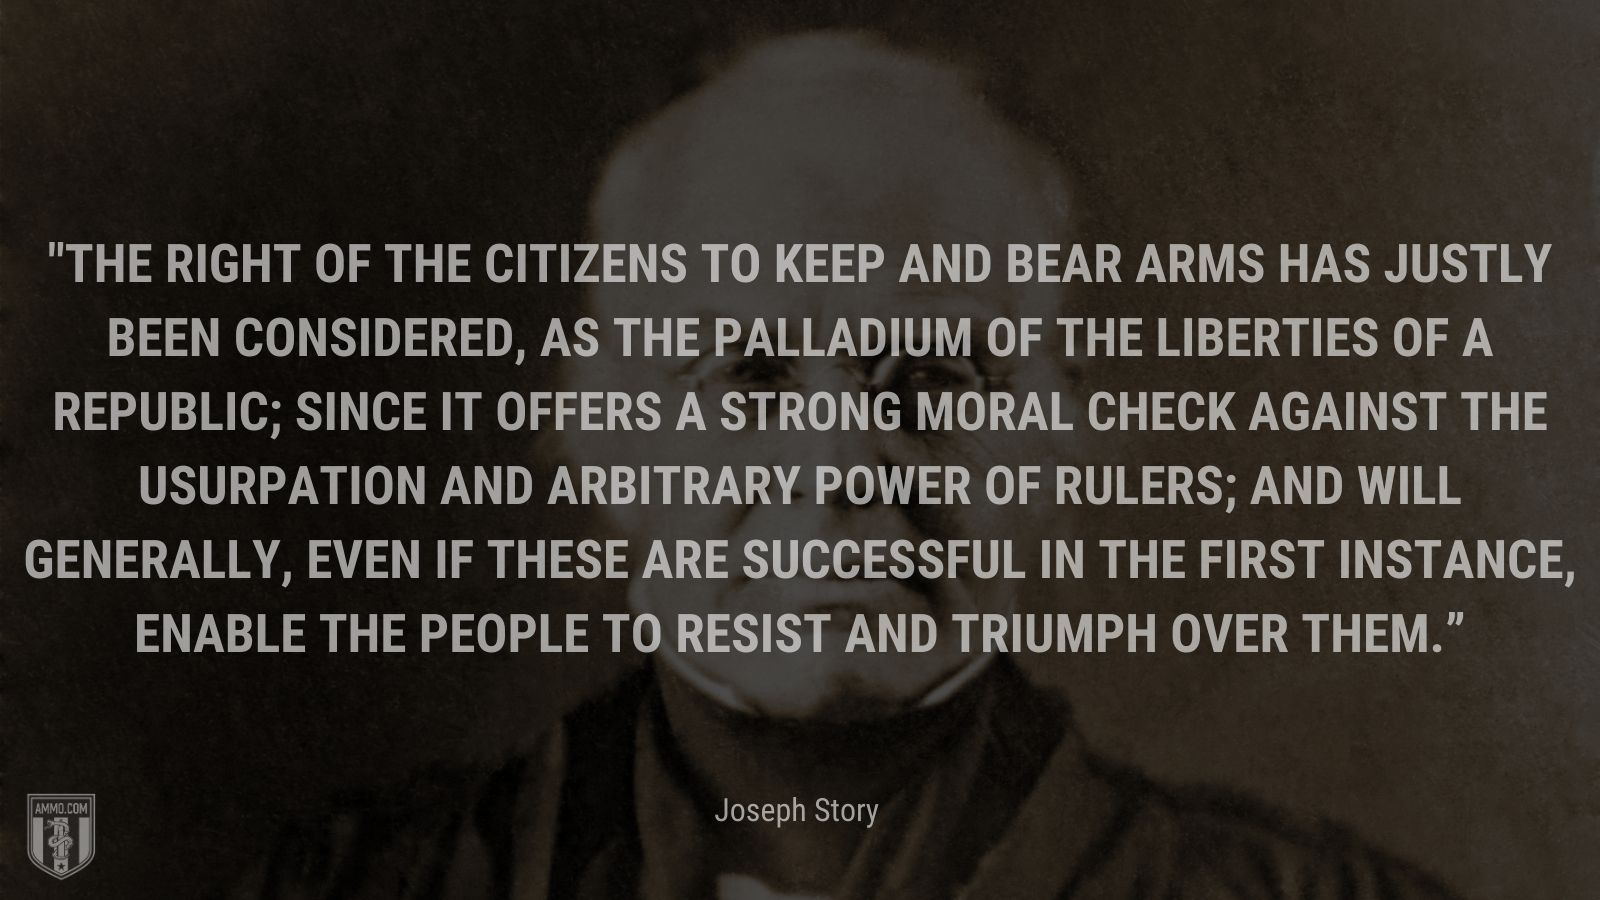 """""""The right of the citizens to keep and bear arms has justly been considered, as the palladium of the liberties of a republic; since it offers a strong moral check against the usurpation and arbitrary power of rulers; and will generally, even if these are successful in the first instance, enable the people to resist and triumph over them."""" - Joseph Story"""